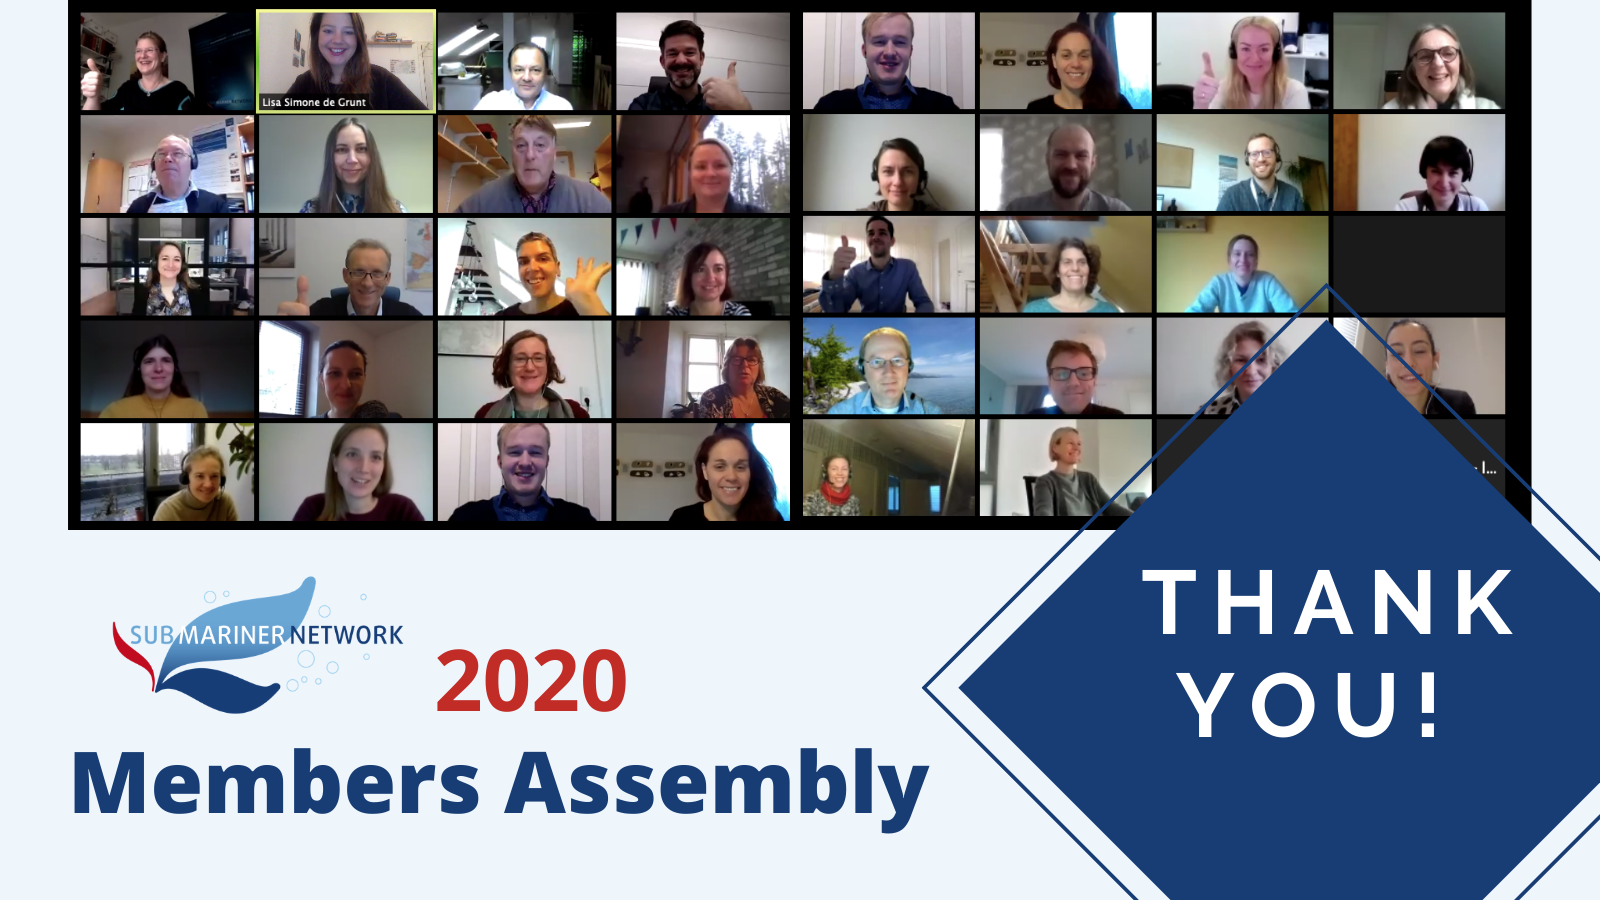 Members Assembly 2020: Thank You!